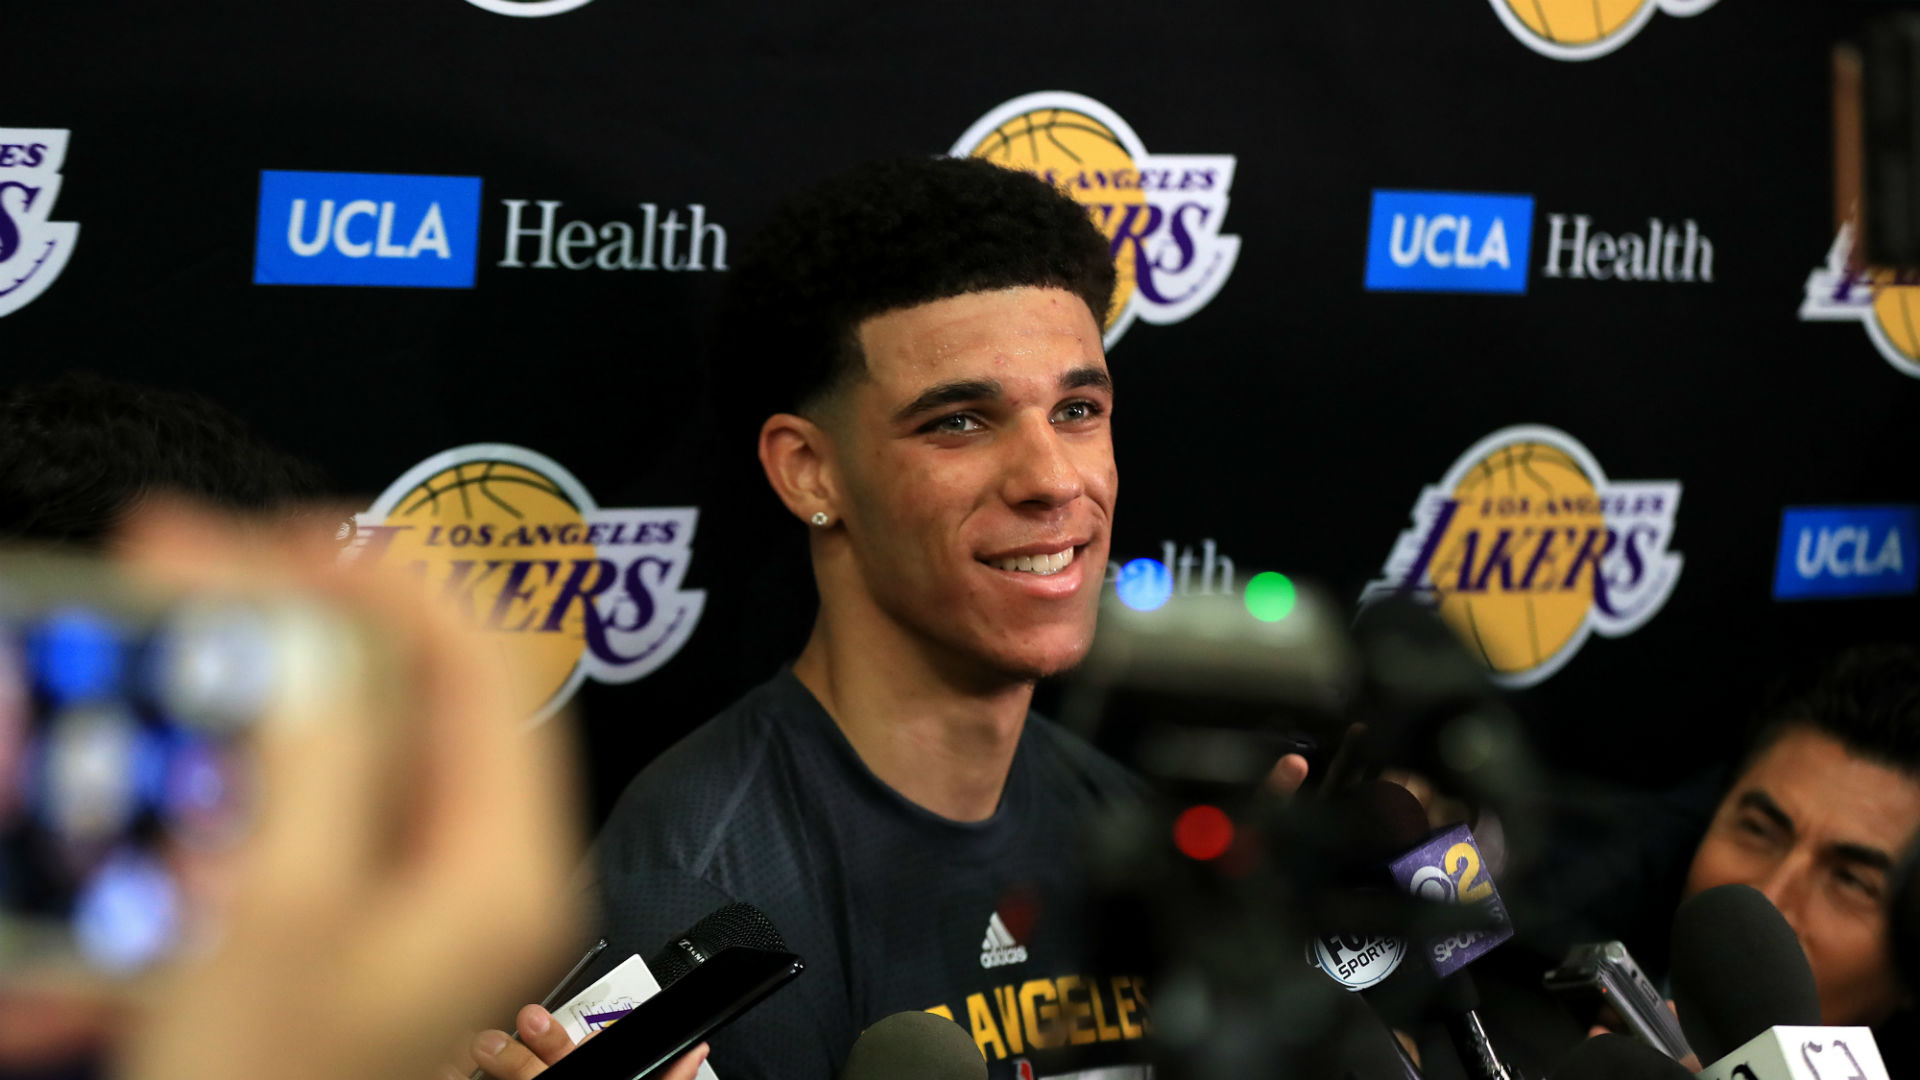 Magic Johnson calls Lonzo Ball 'the new face of the Lakers'